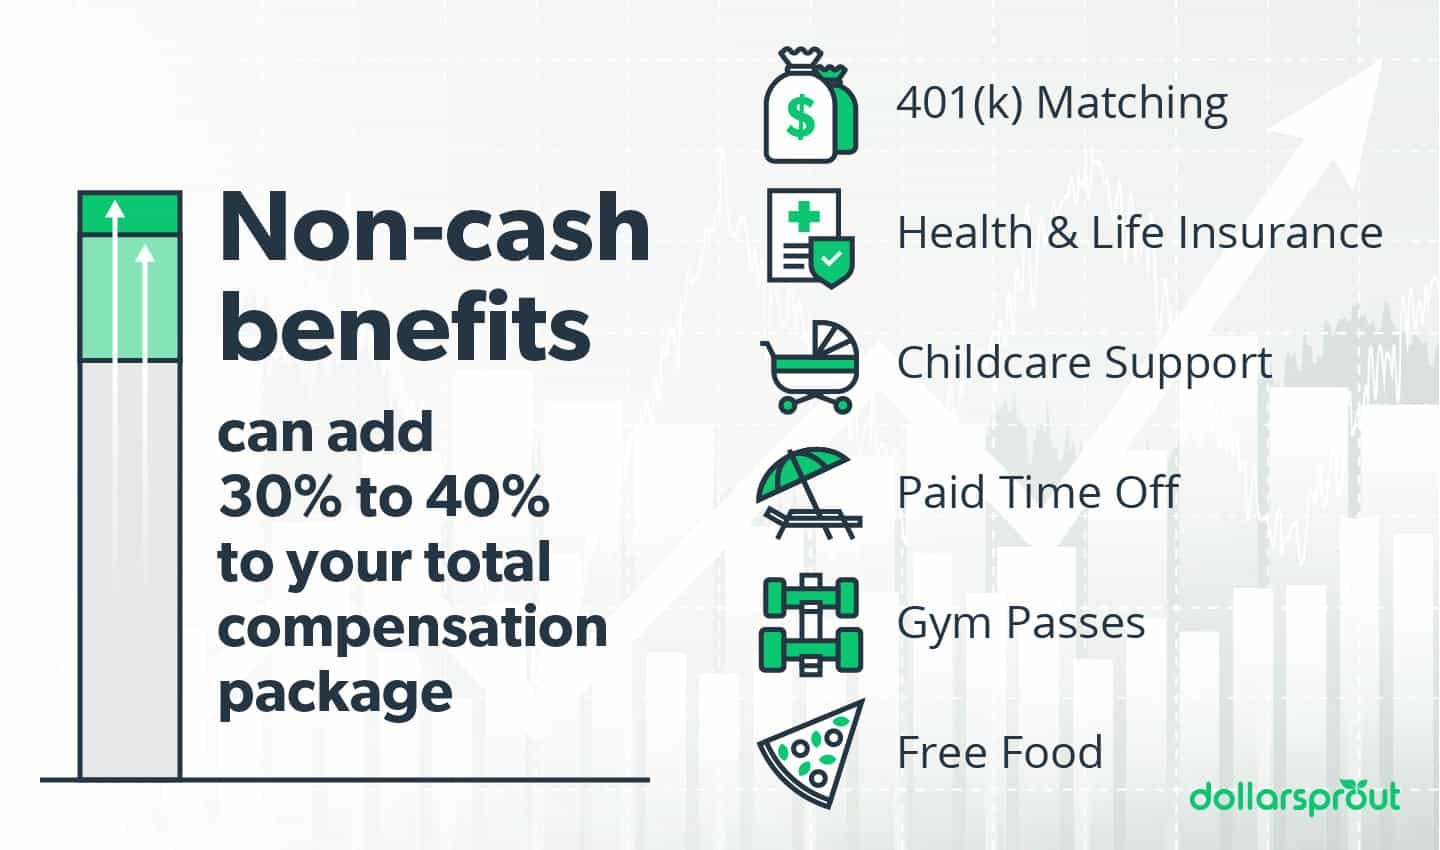 Non-cash benefits can add 30 to 40 percent to your compensation